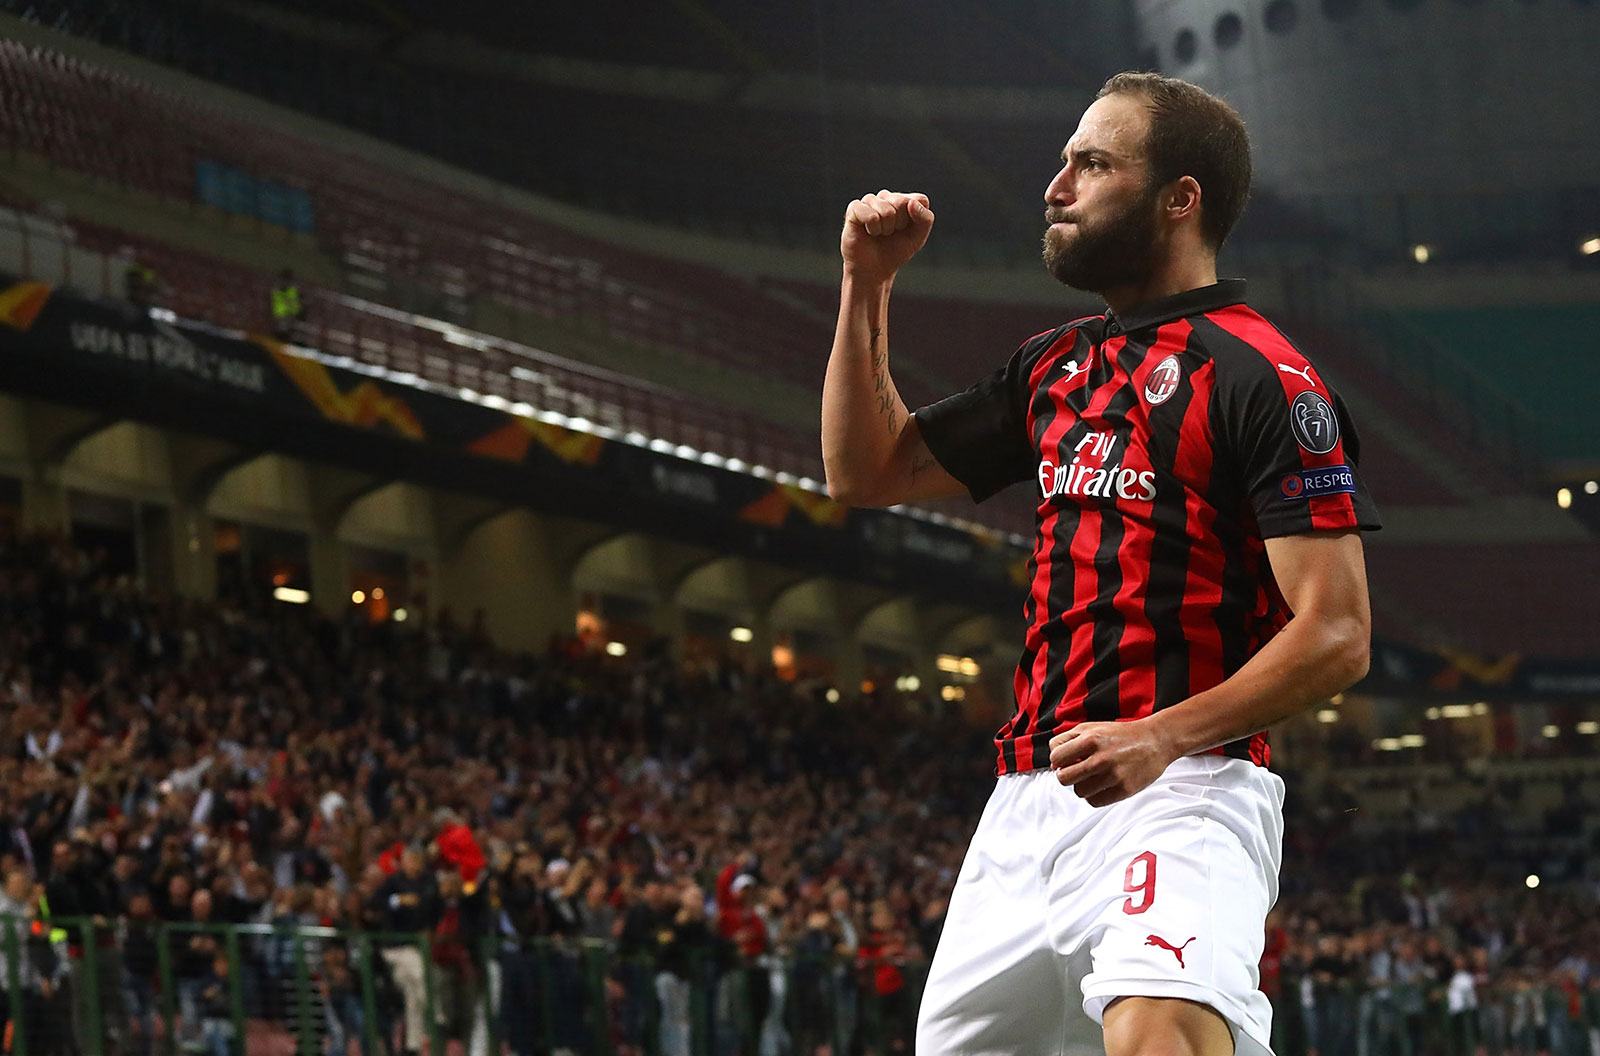 Gonzalo Higuaín celebrating during Milan-Olympiacos at Stadio San Siro on  October 4 22569fa67